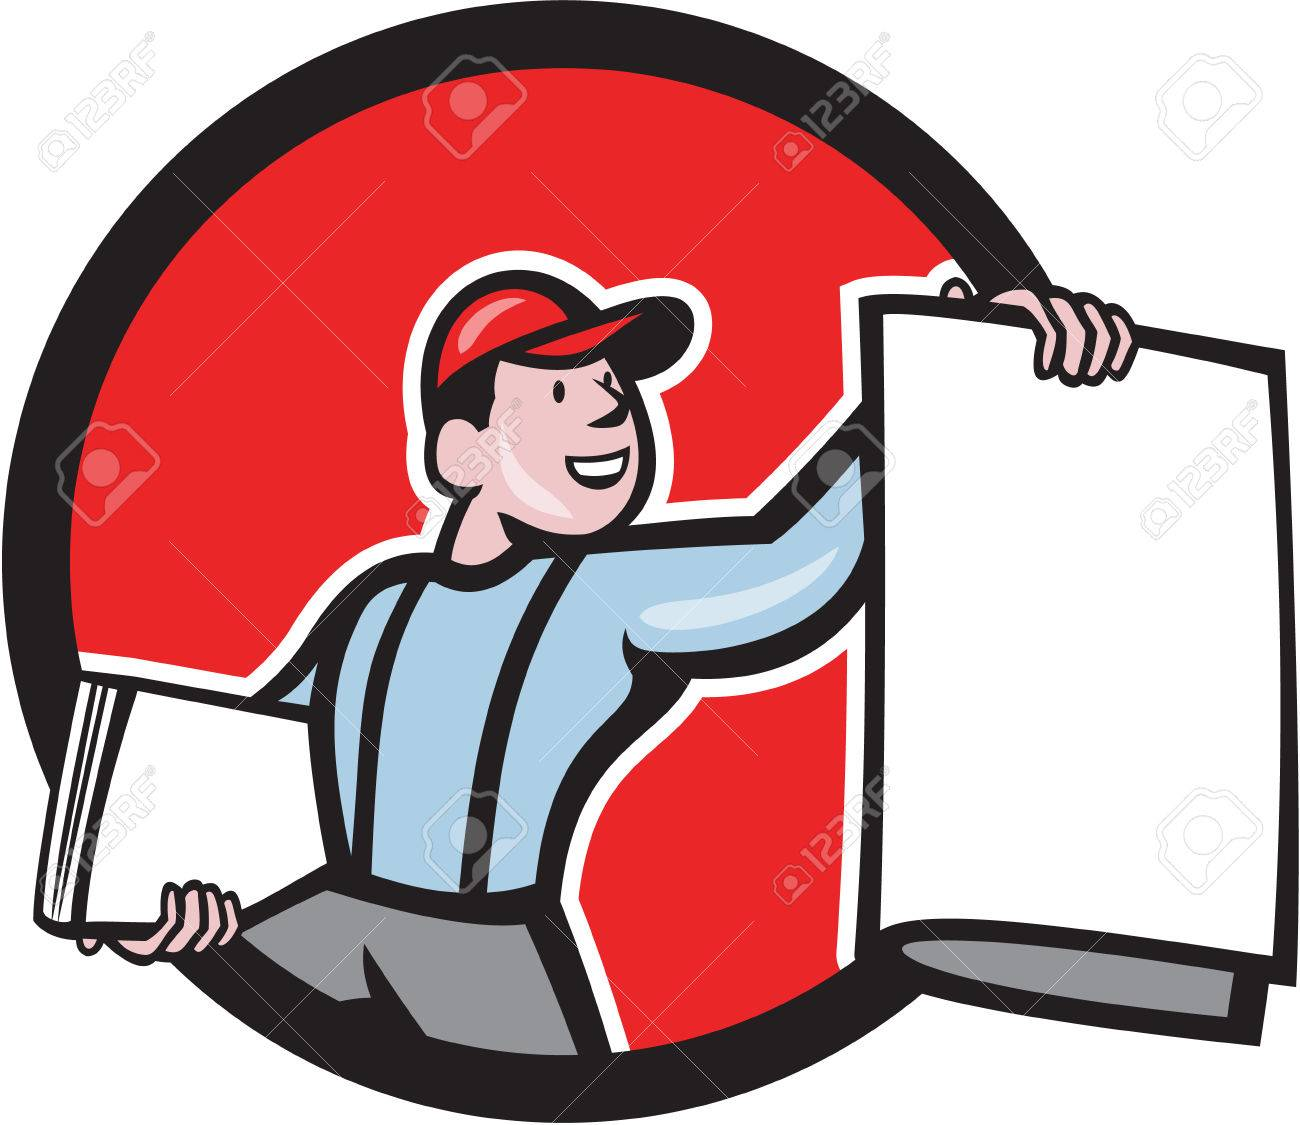 Illustration of a newsboy shouting selling newspaper set inside circle on isolated background done in cartoon style. Stock Vector - 28374086